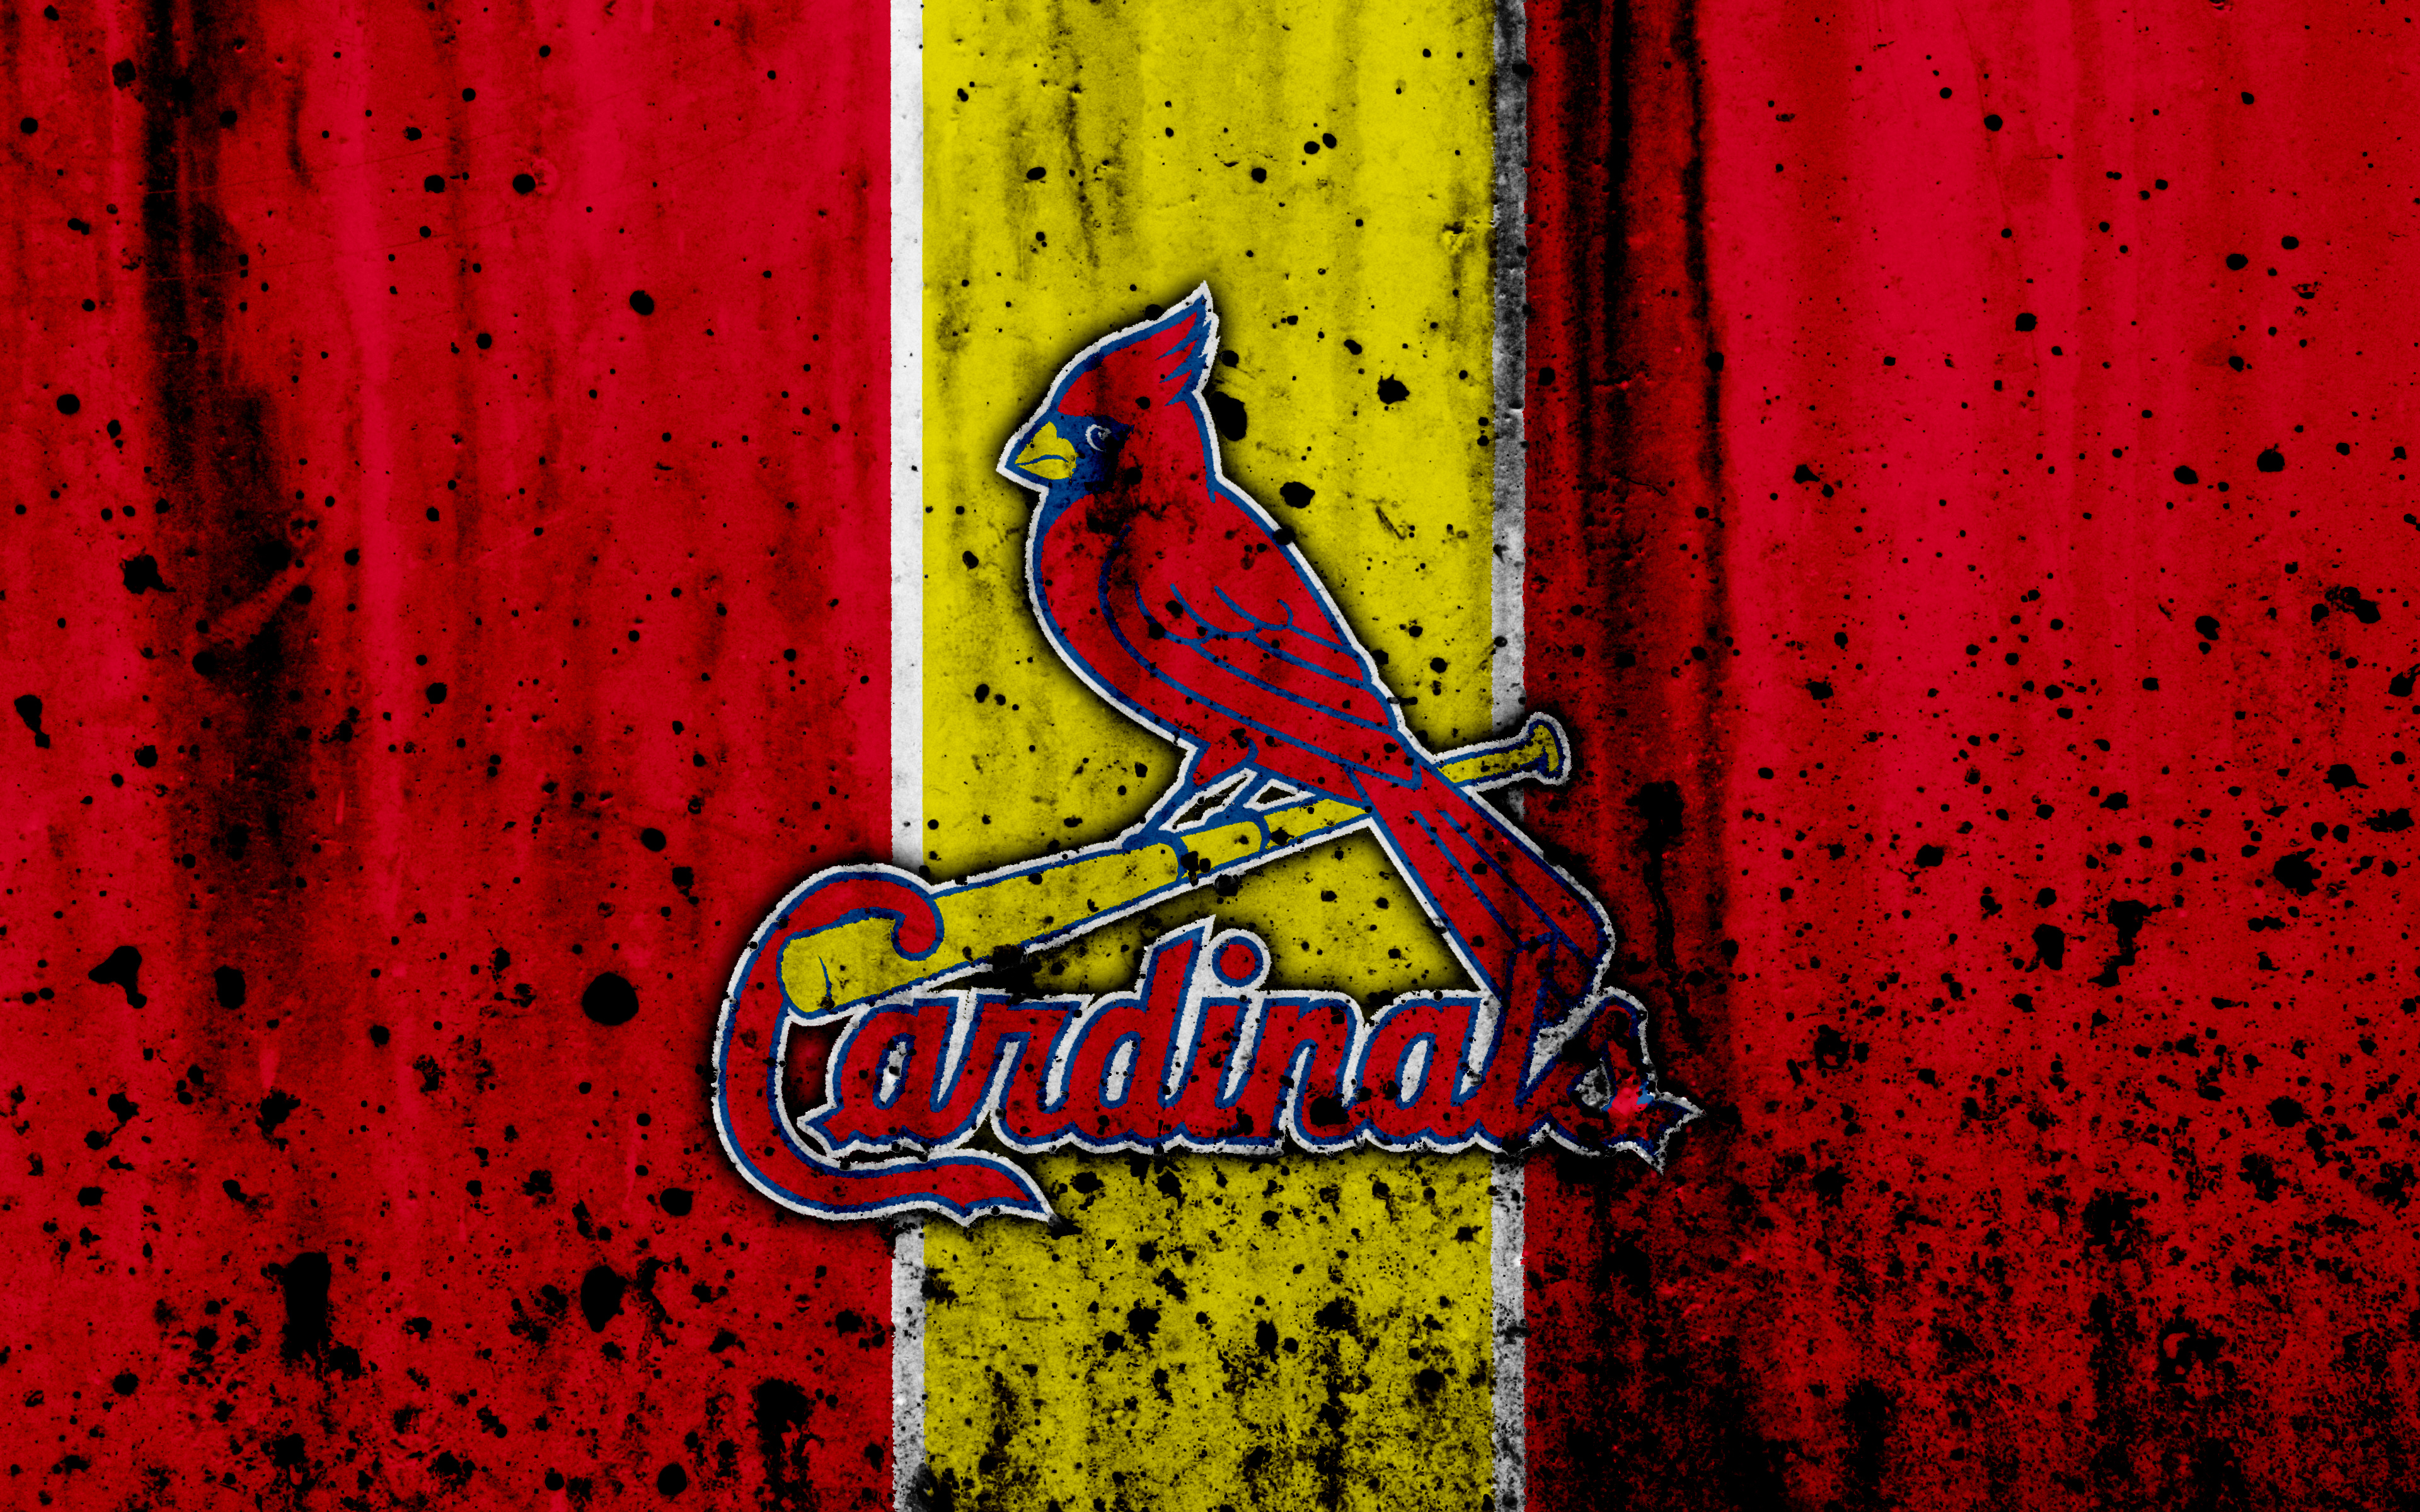 St Louis Cardinals 4k Ultra Hd Wallpaper Background Image